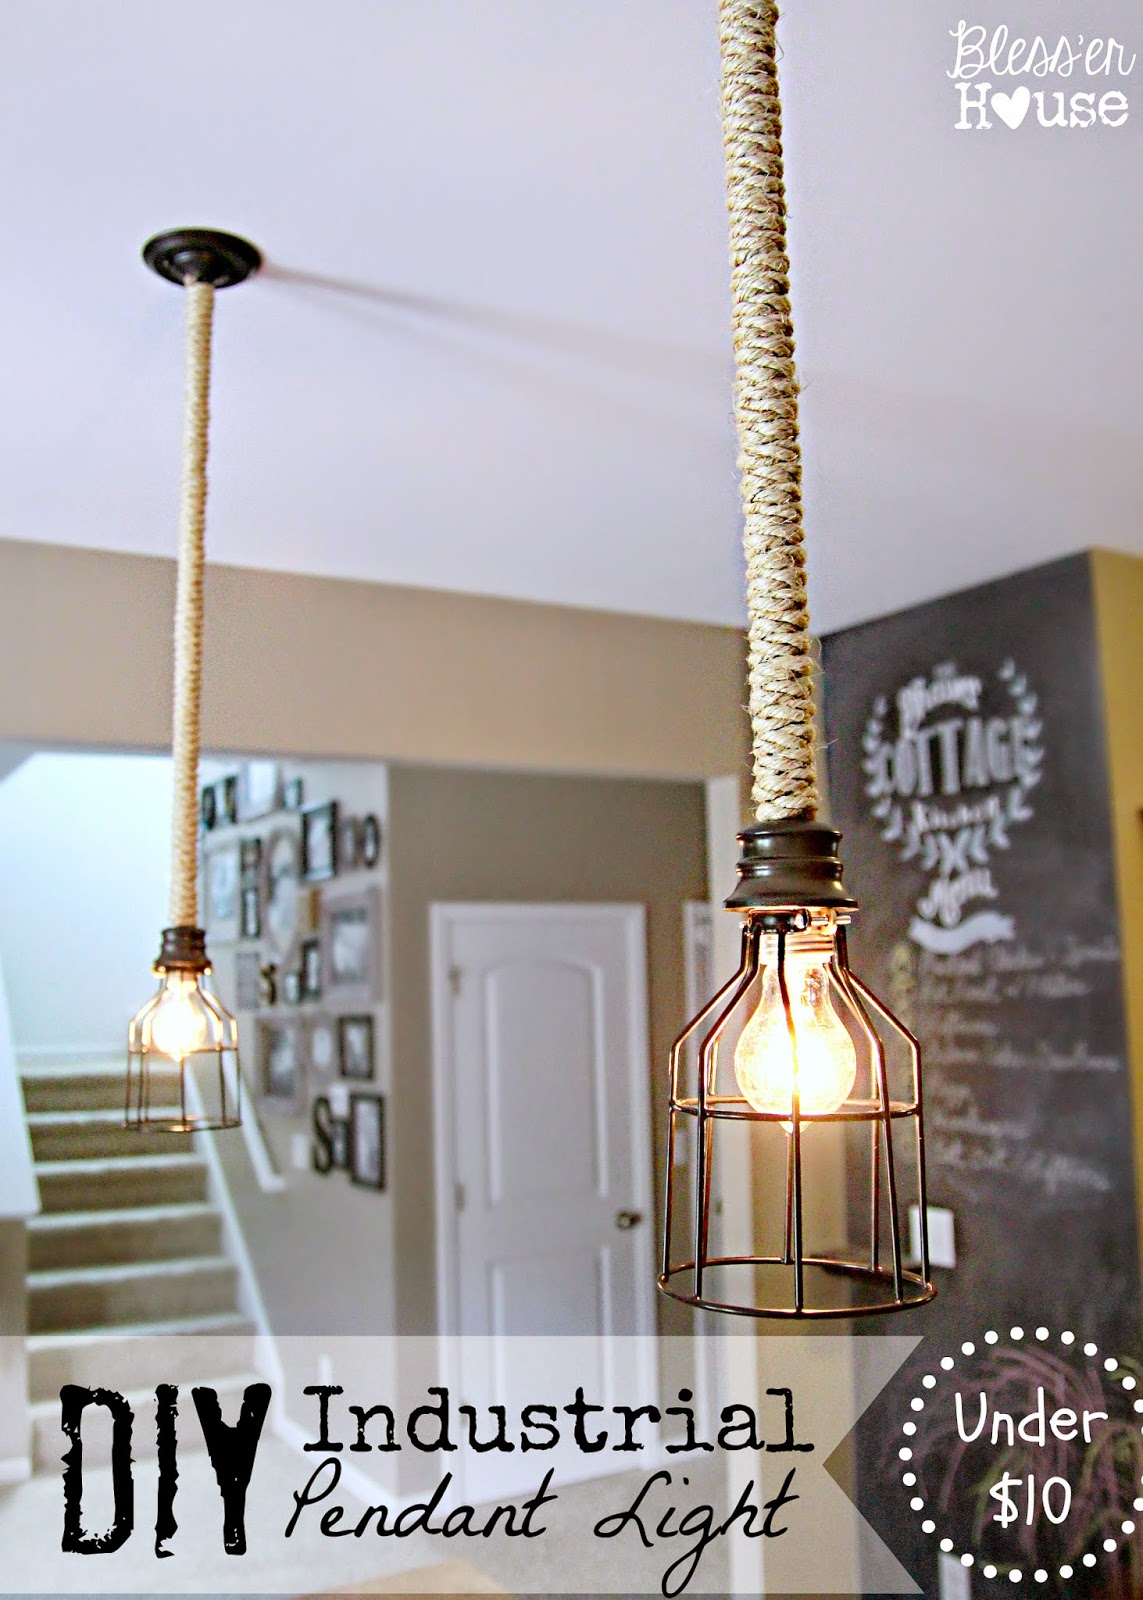 light ceiling rope home pendant scenario lamp products lighting hemp metal and